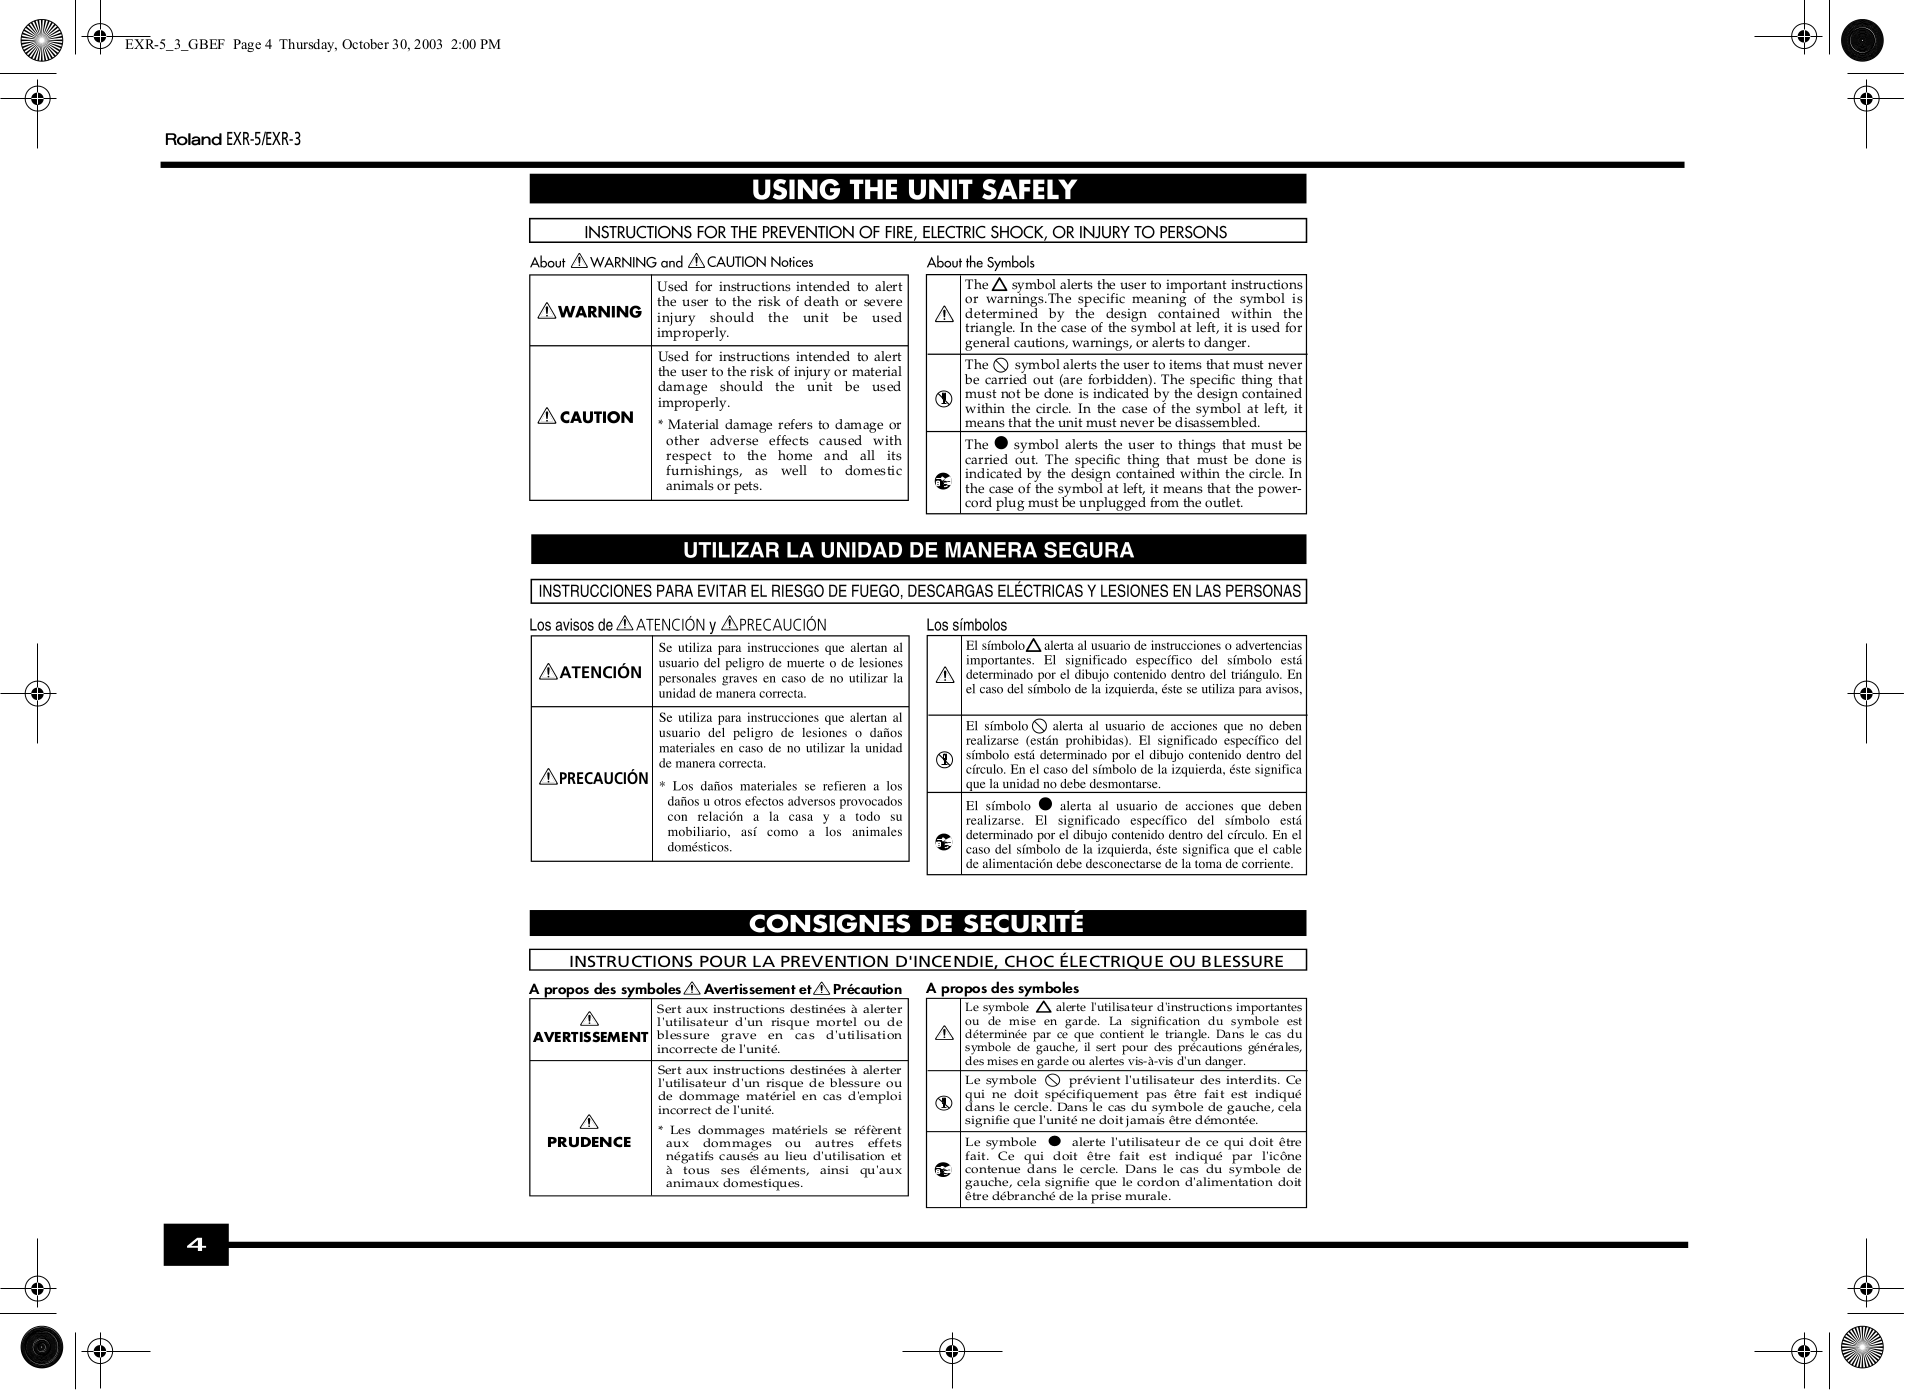 Pdf manual for roland music keyboard exr 5 roland music keyboard exr 5 pdf page preview biocorpaavc Images